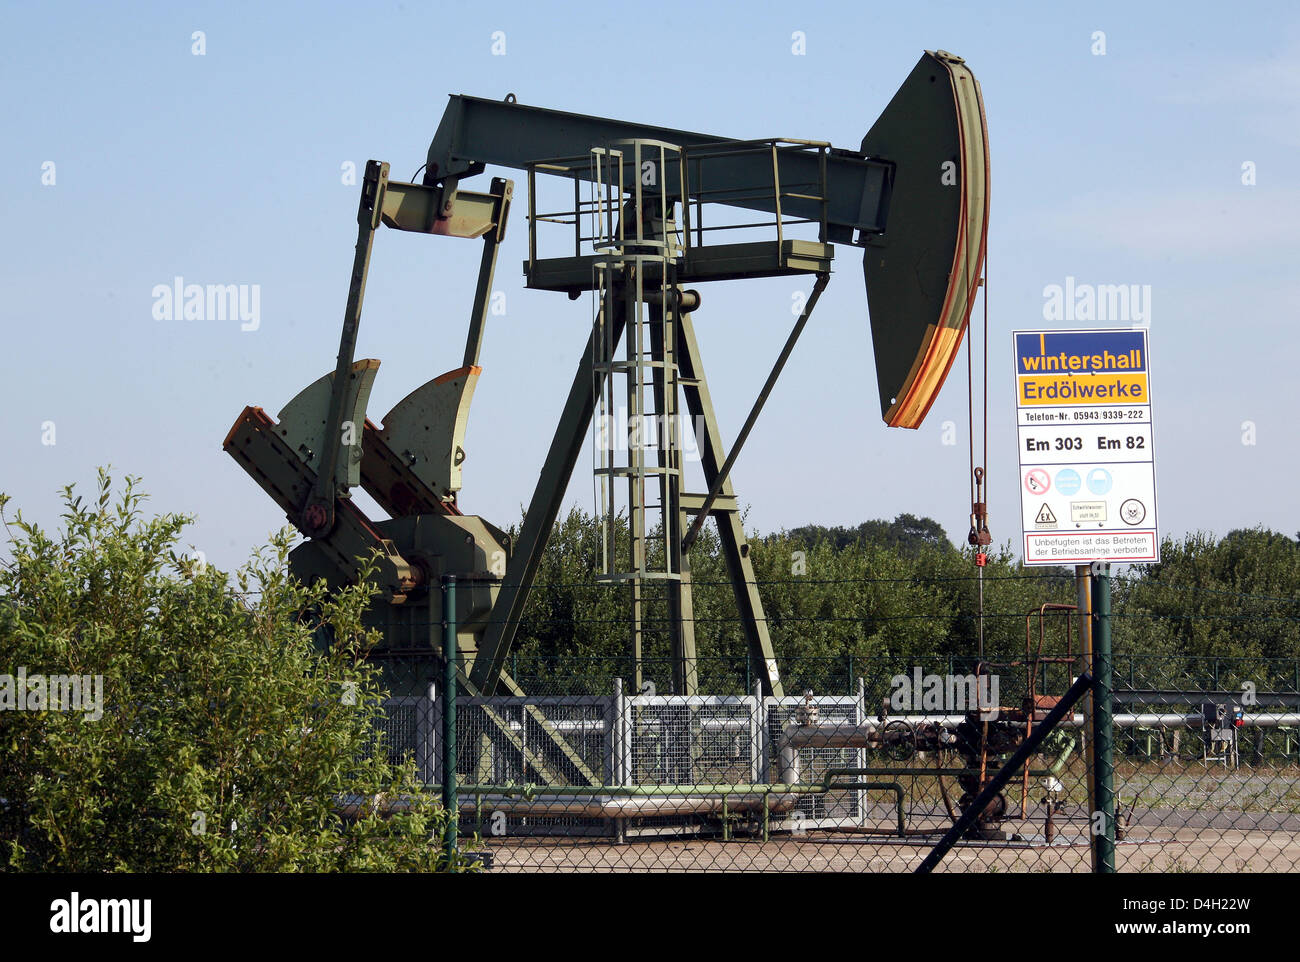 A 'Winterhall' sign post seen in front of a pumpjack-type oil pump near Emlichheim, County Bentheim, Germany, 28 Stock Photo